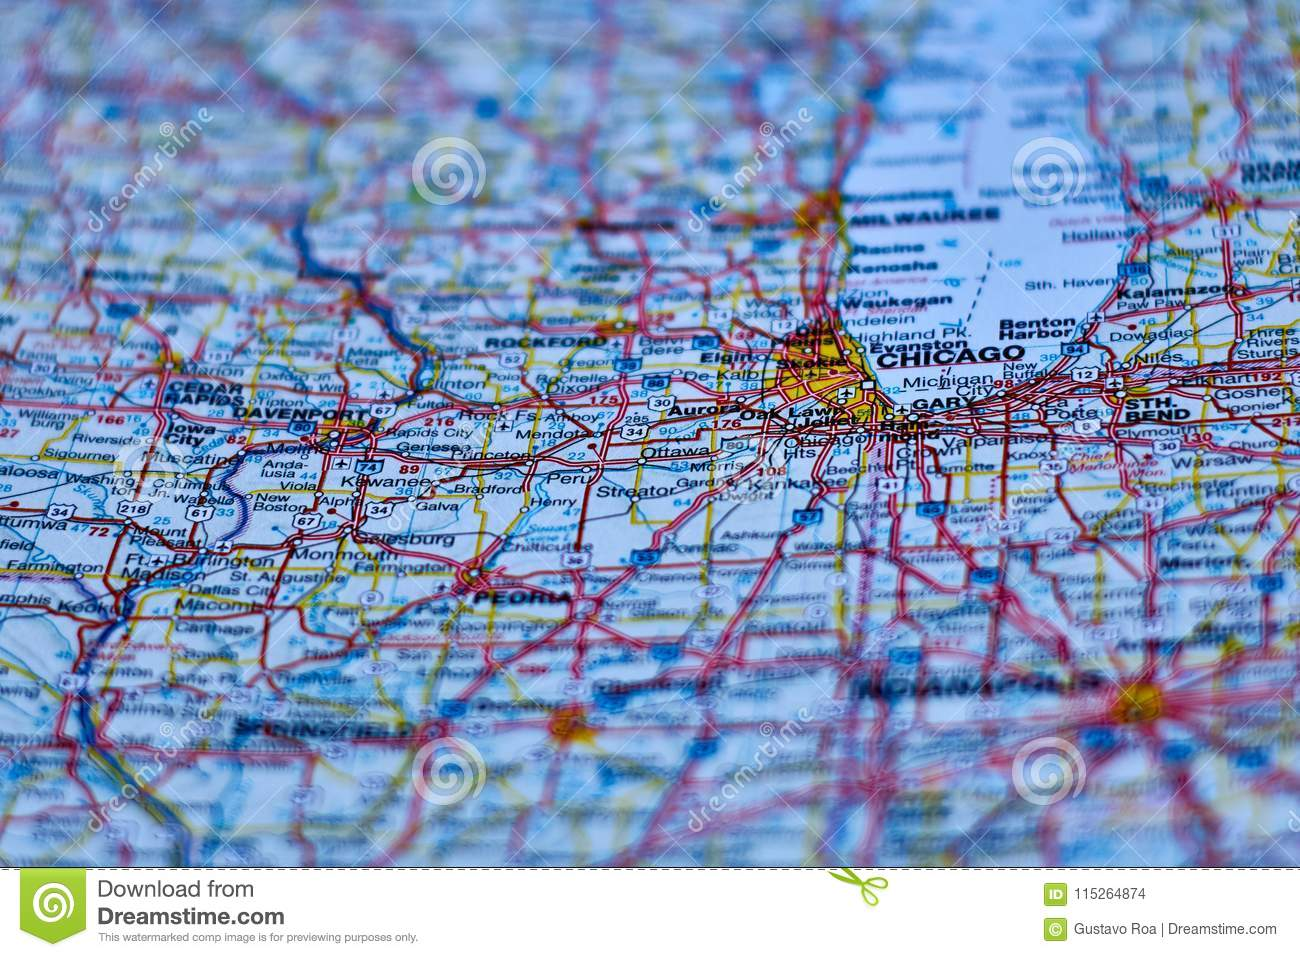 Chicago America Map.Map Of The City Of Chicago Ilinios Stock Photo Image Of Ilinios